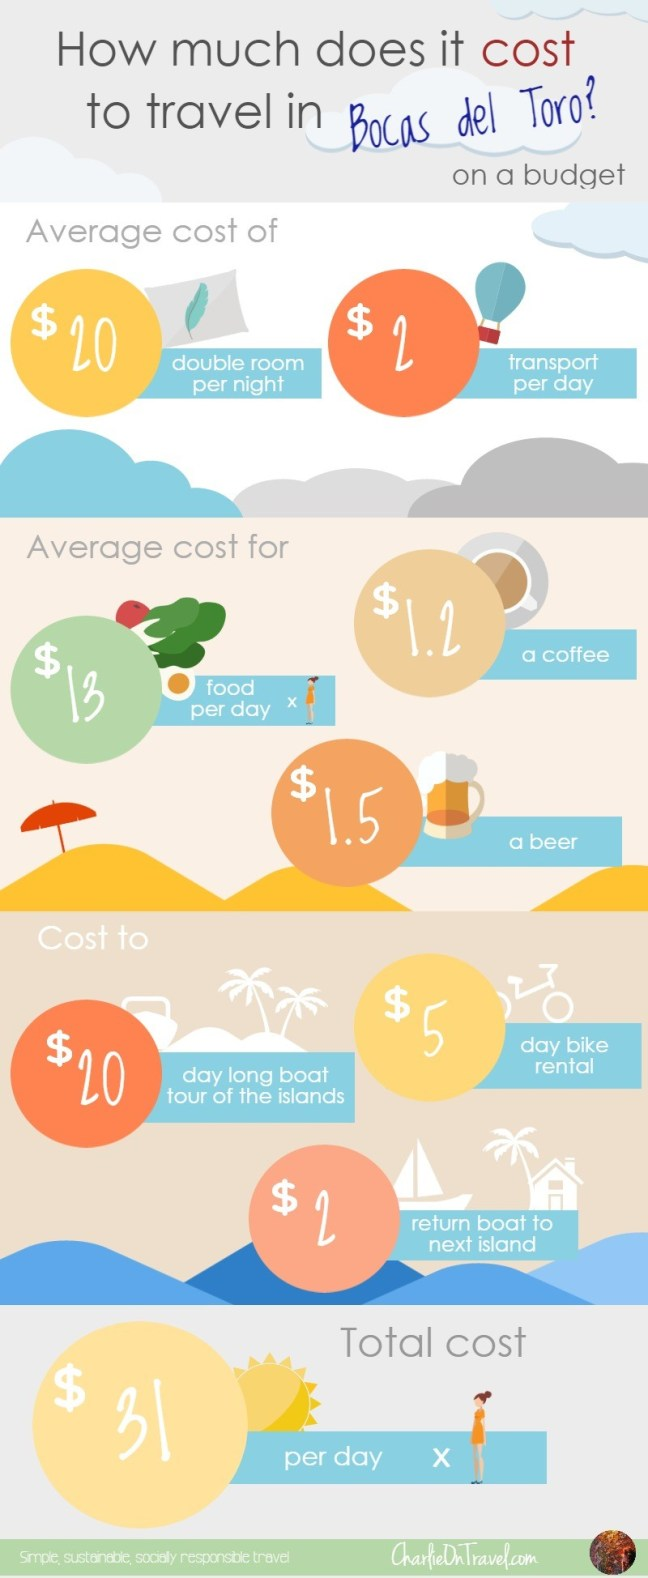 Cost of Travel Bocas del Toro - Charlie on Travel